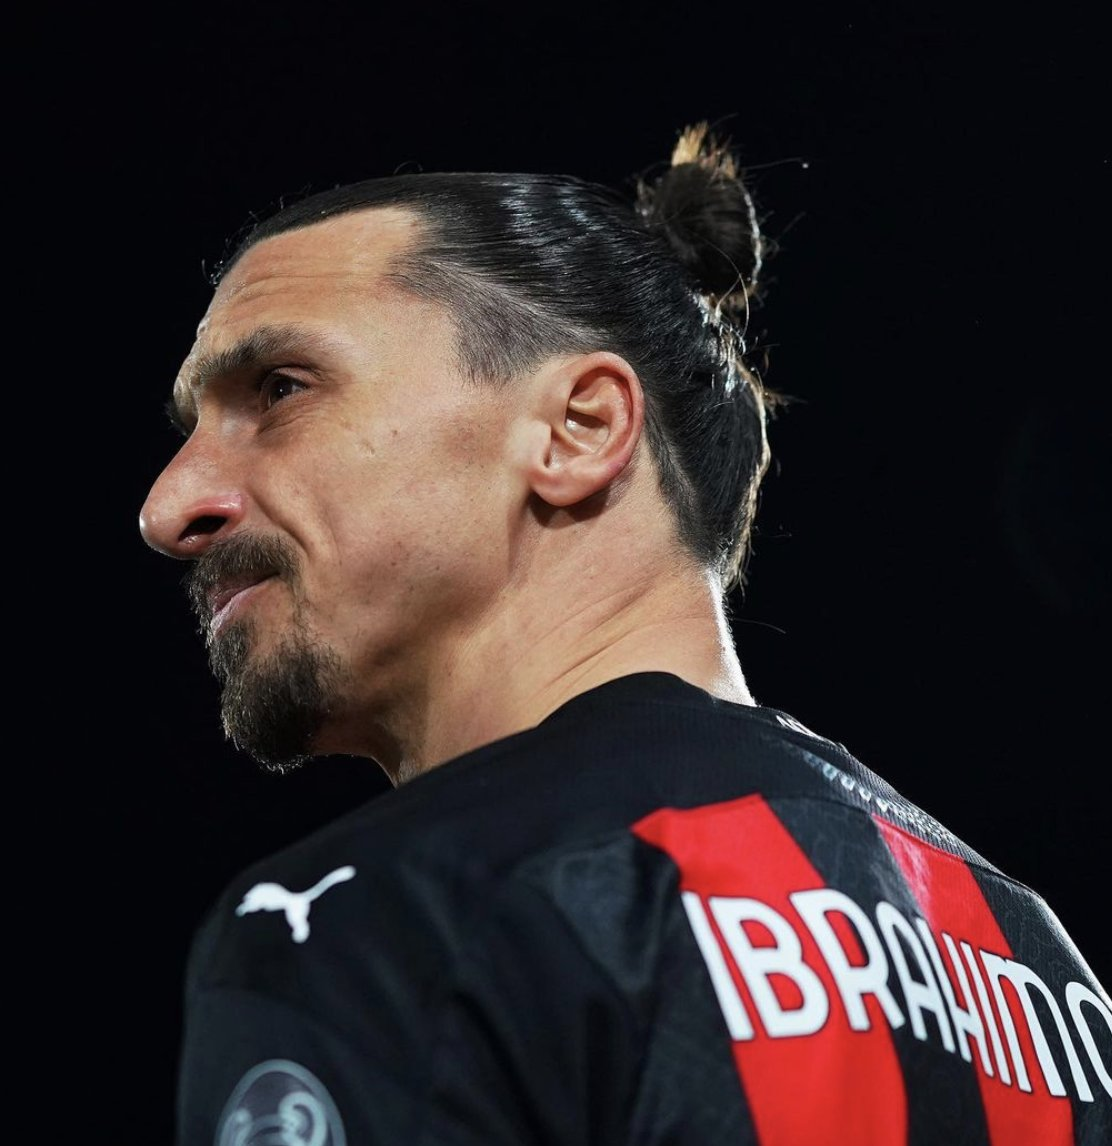 @InvictosSomos's photo on Zlatan